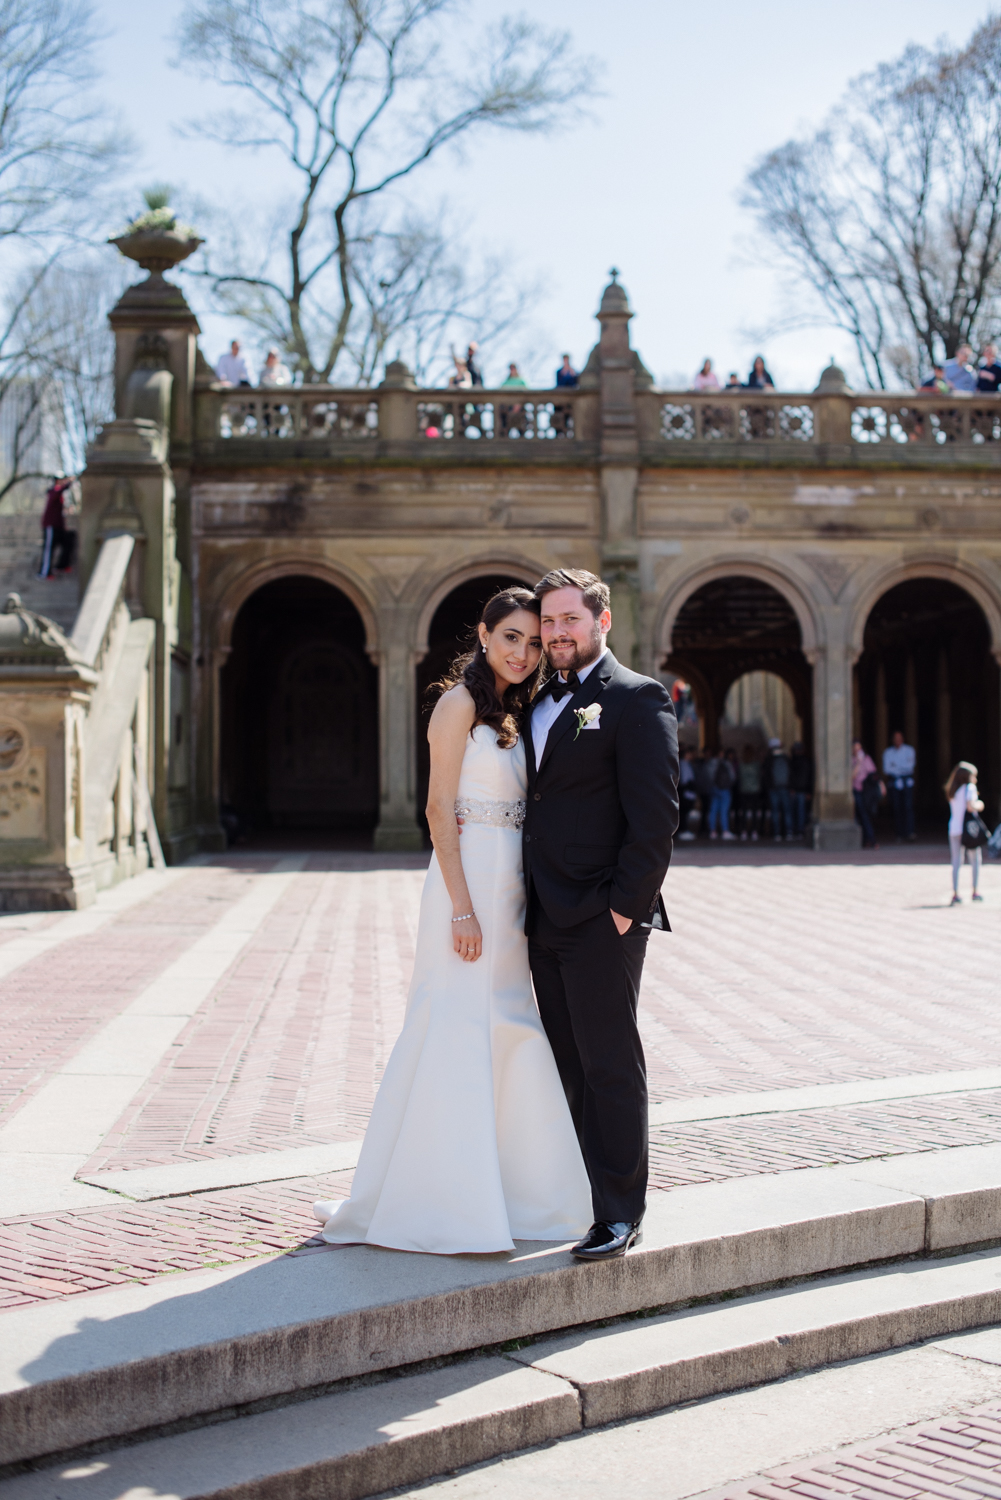 Anahi+David- Central Park Elopement- New York City- Olivia Christina Photo (63).JPG